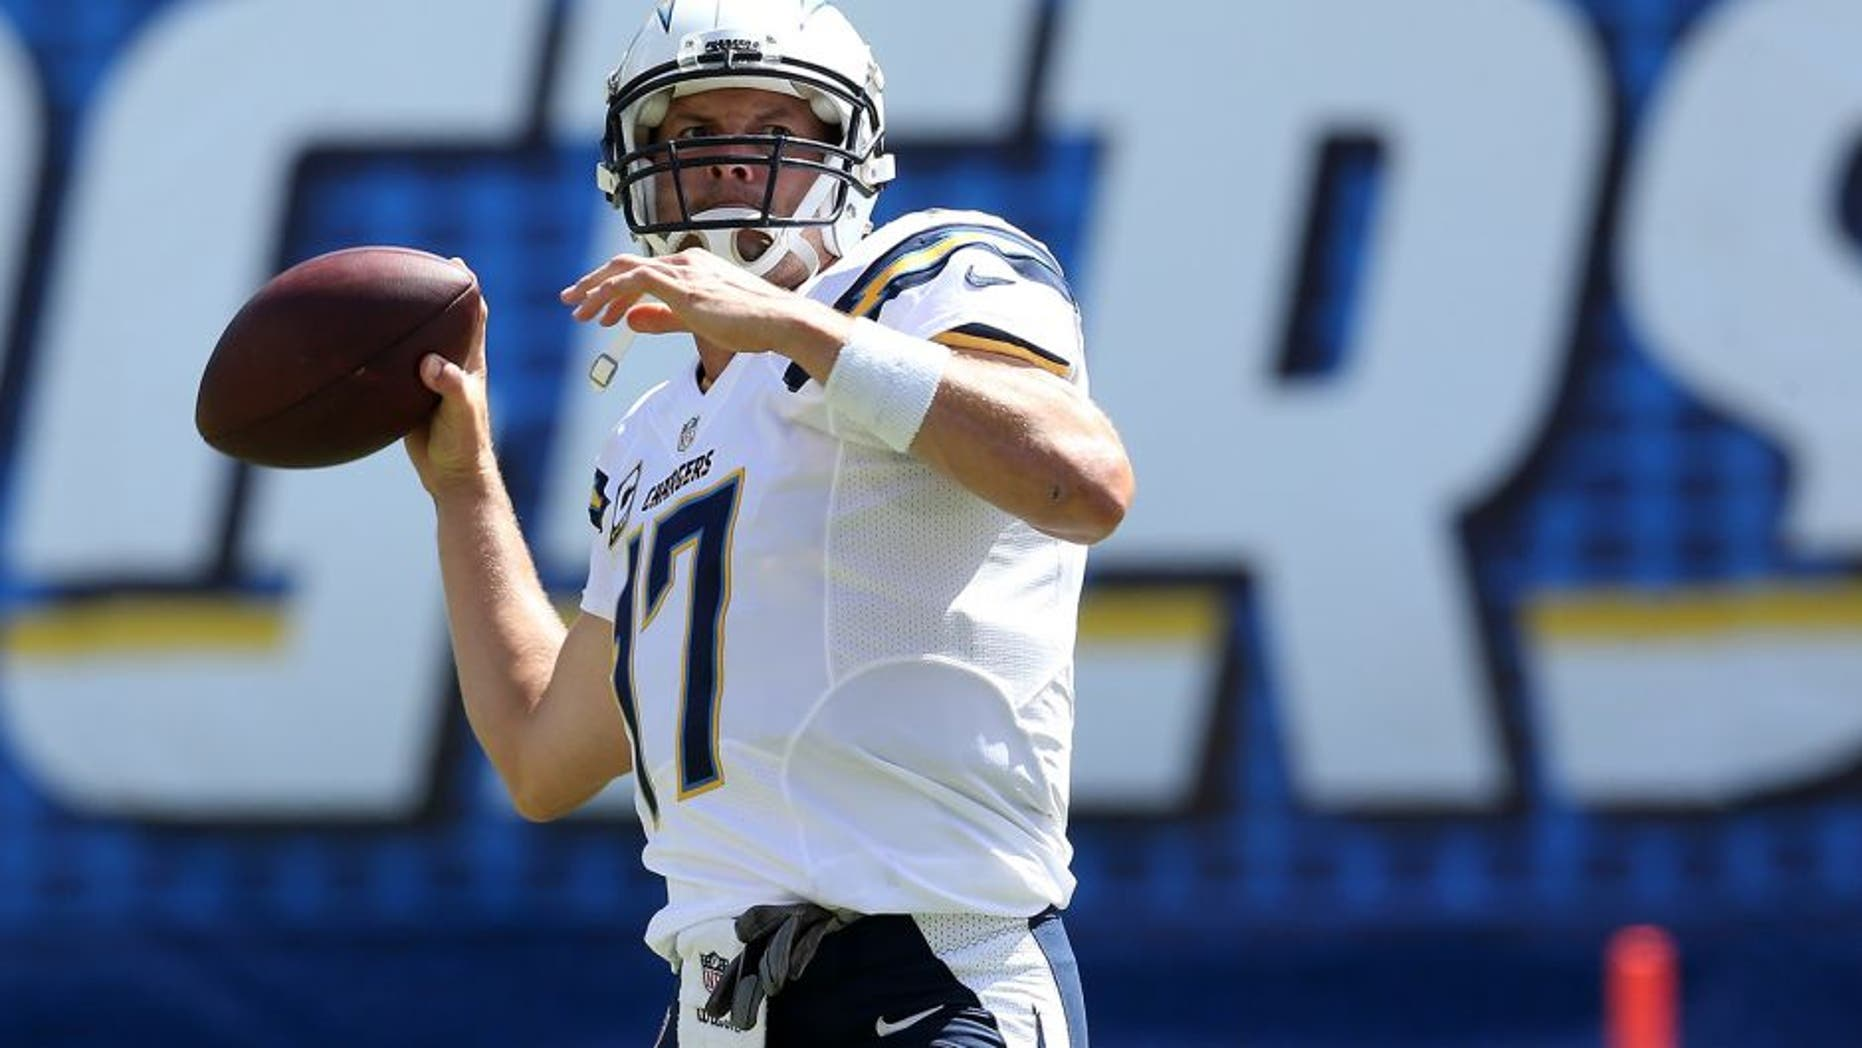 SAN DIEGO, CA - SEPTEMBER 28: Philip Rivers #17 of the San Diego Chargers throws the ball during warmups for the game with the Jacksonville Jaguars at Qualcomm Stadium on September 28, 2014 in San Diego, California. (Photo by Stephen Dunn/Getty Images)